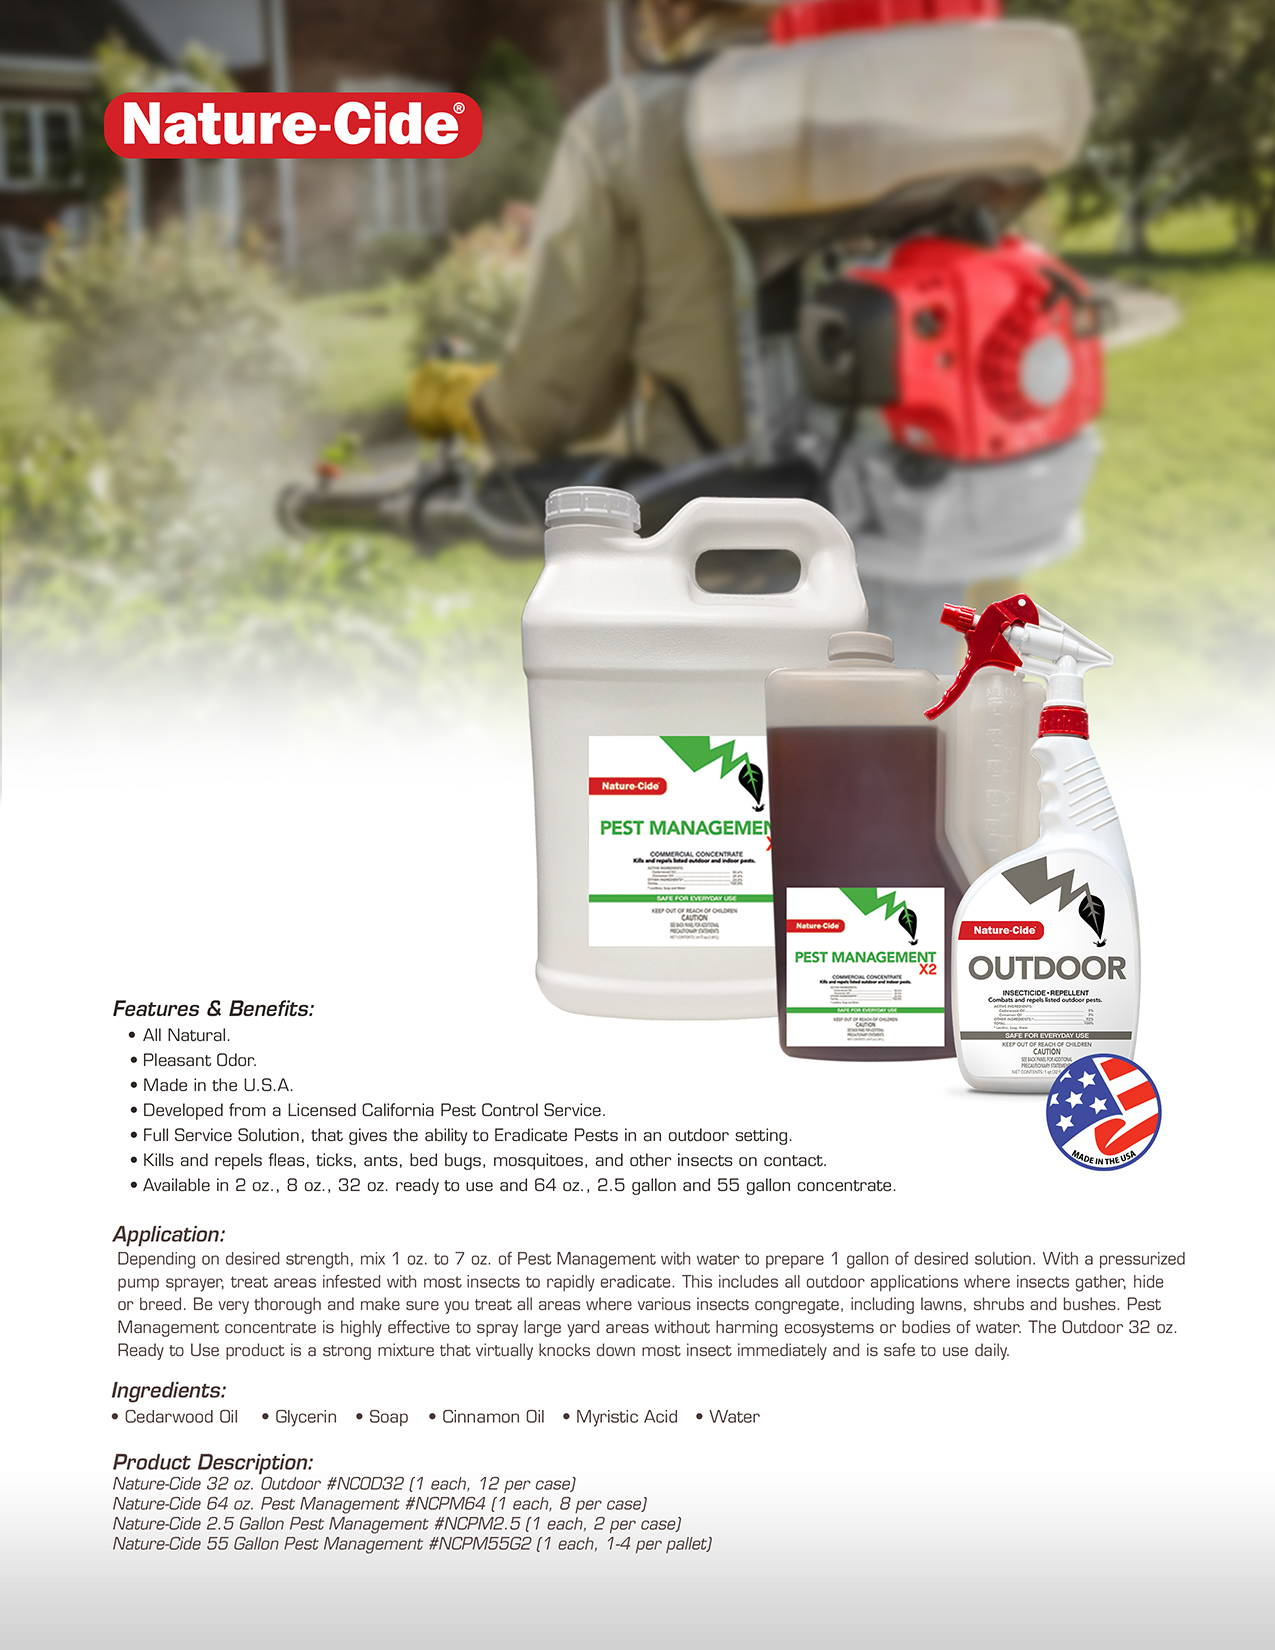 Nature-Cide Pest Management Product Info